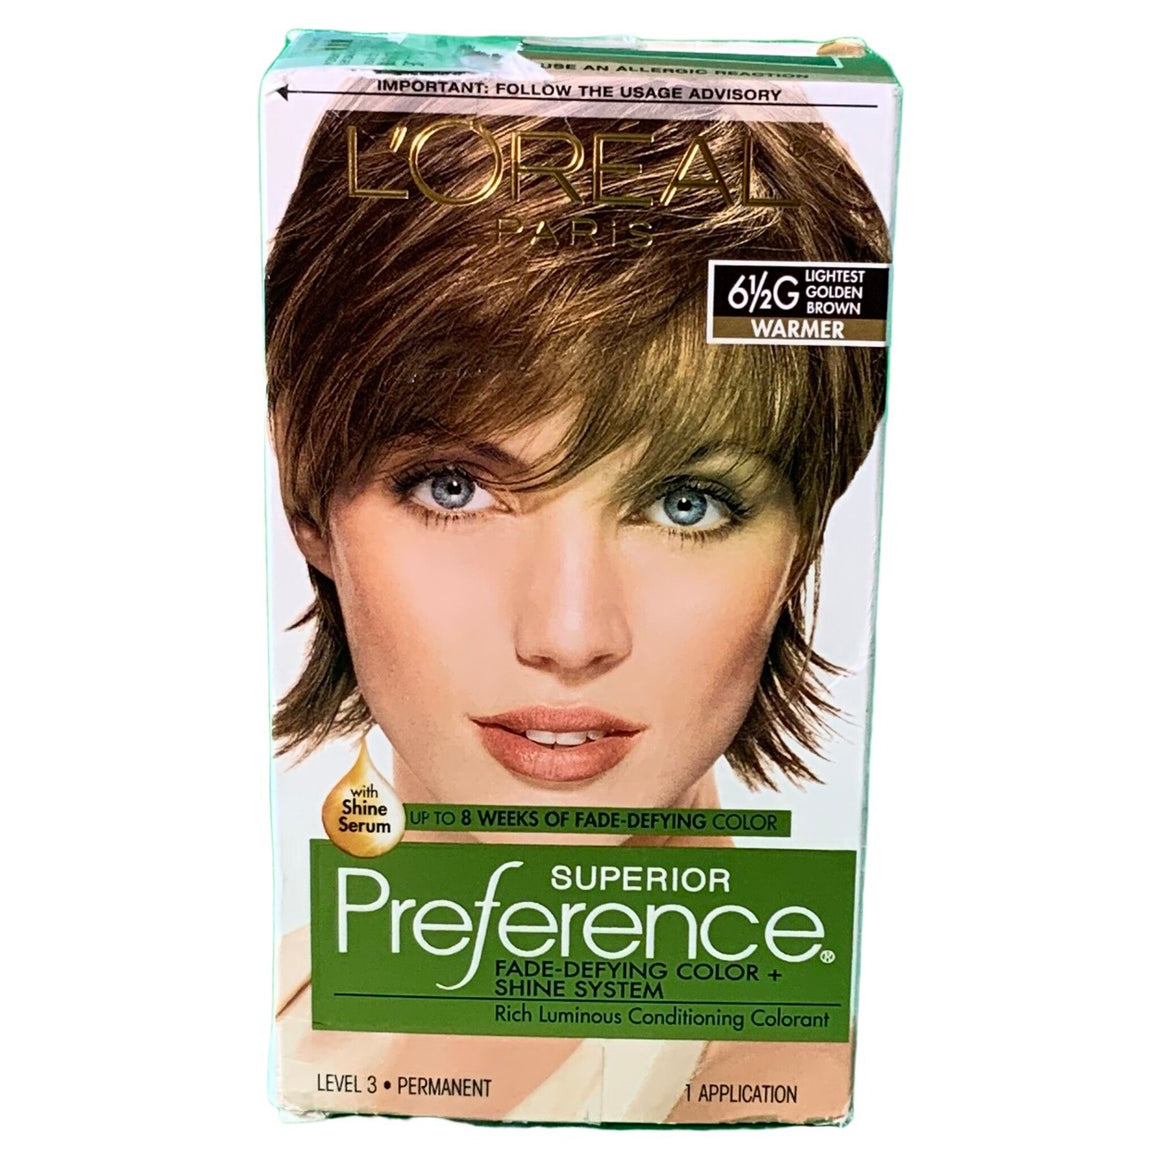 L'Oreal Paris Superior Preference Fade-Defying Color + Shine System, 6.5G Lightest Golden Brown -